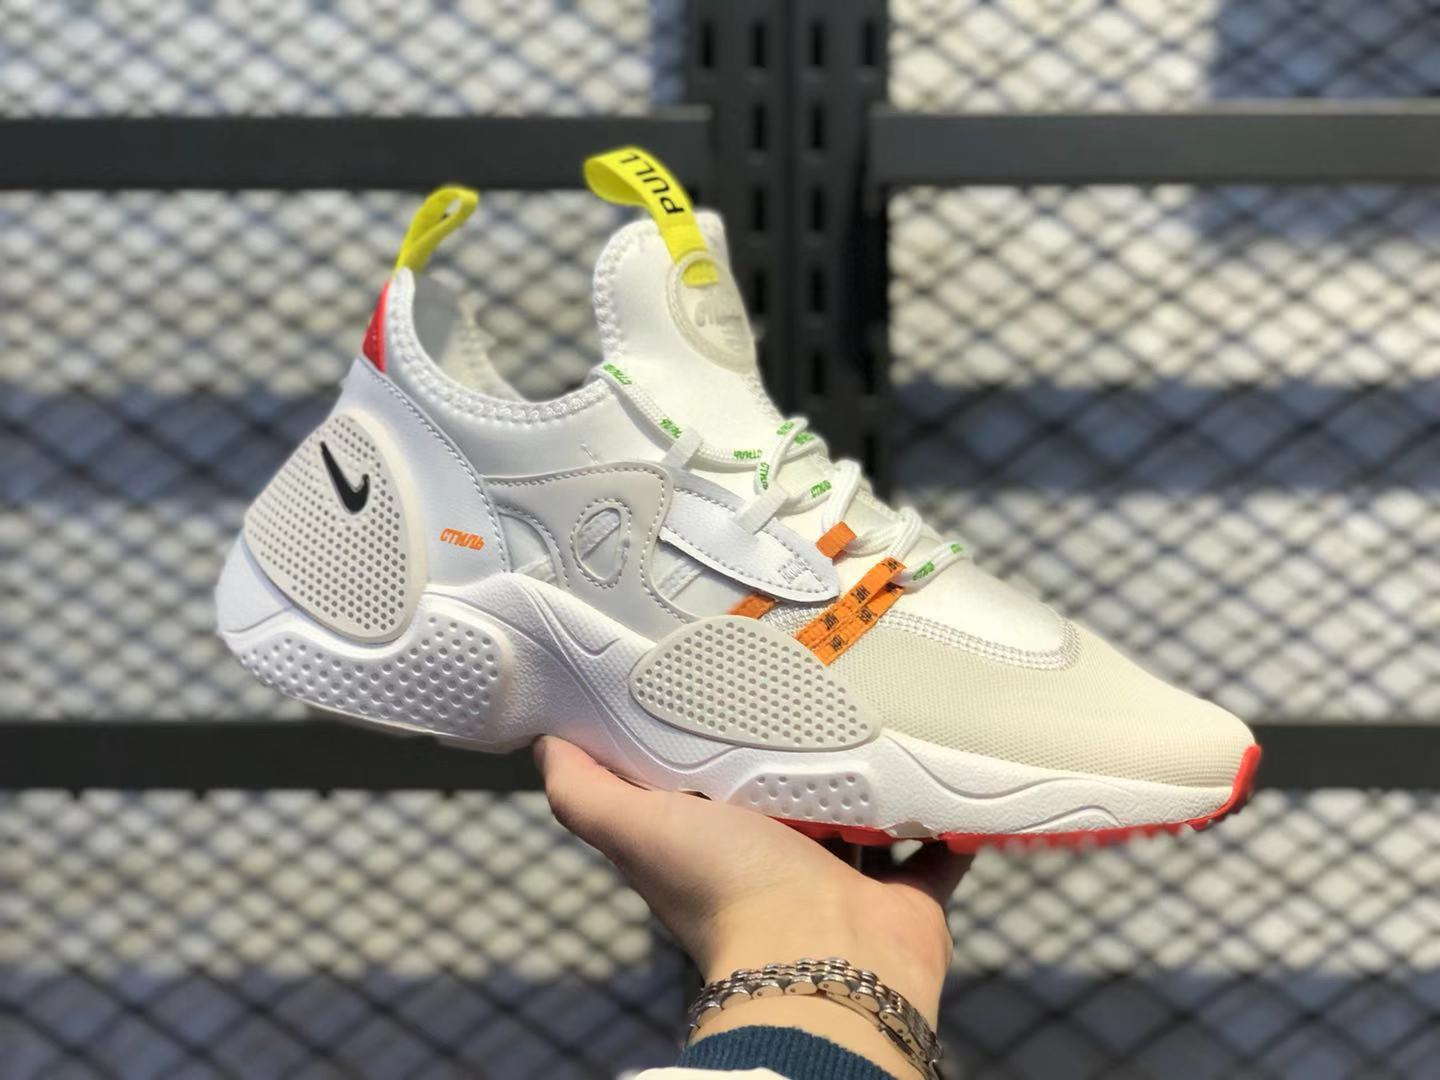 Heron Preston x Nike Air Huarache E.D.G.E.Sail/Summit White-Phantom CD5779-100